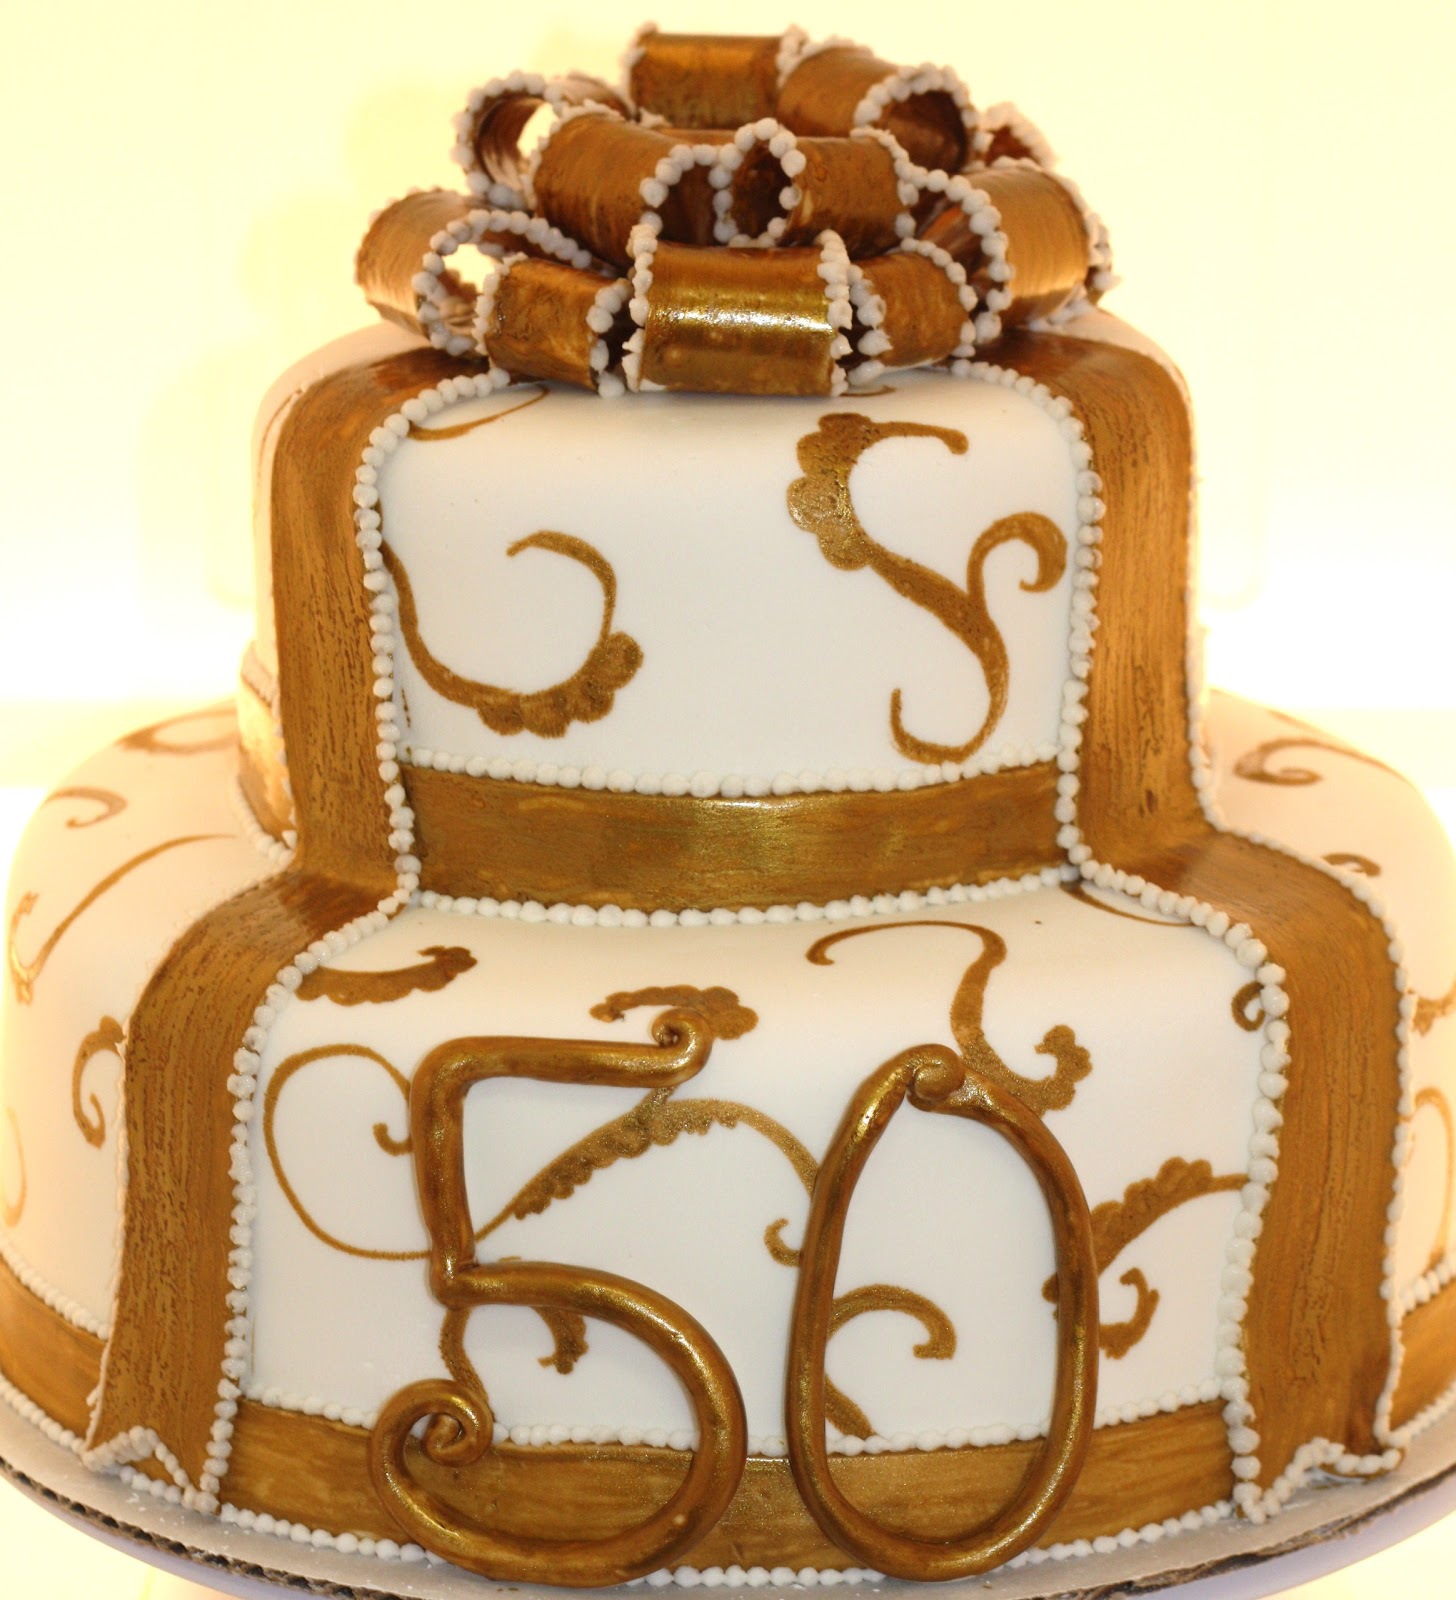 Design Of Cake For Anniversary : 50th Wedding Anniversary Cakes - Tyler Living